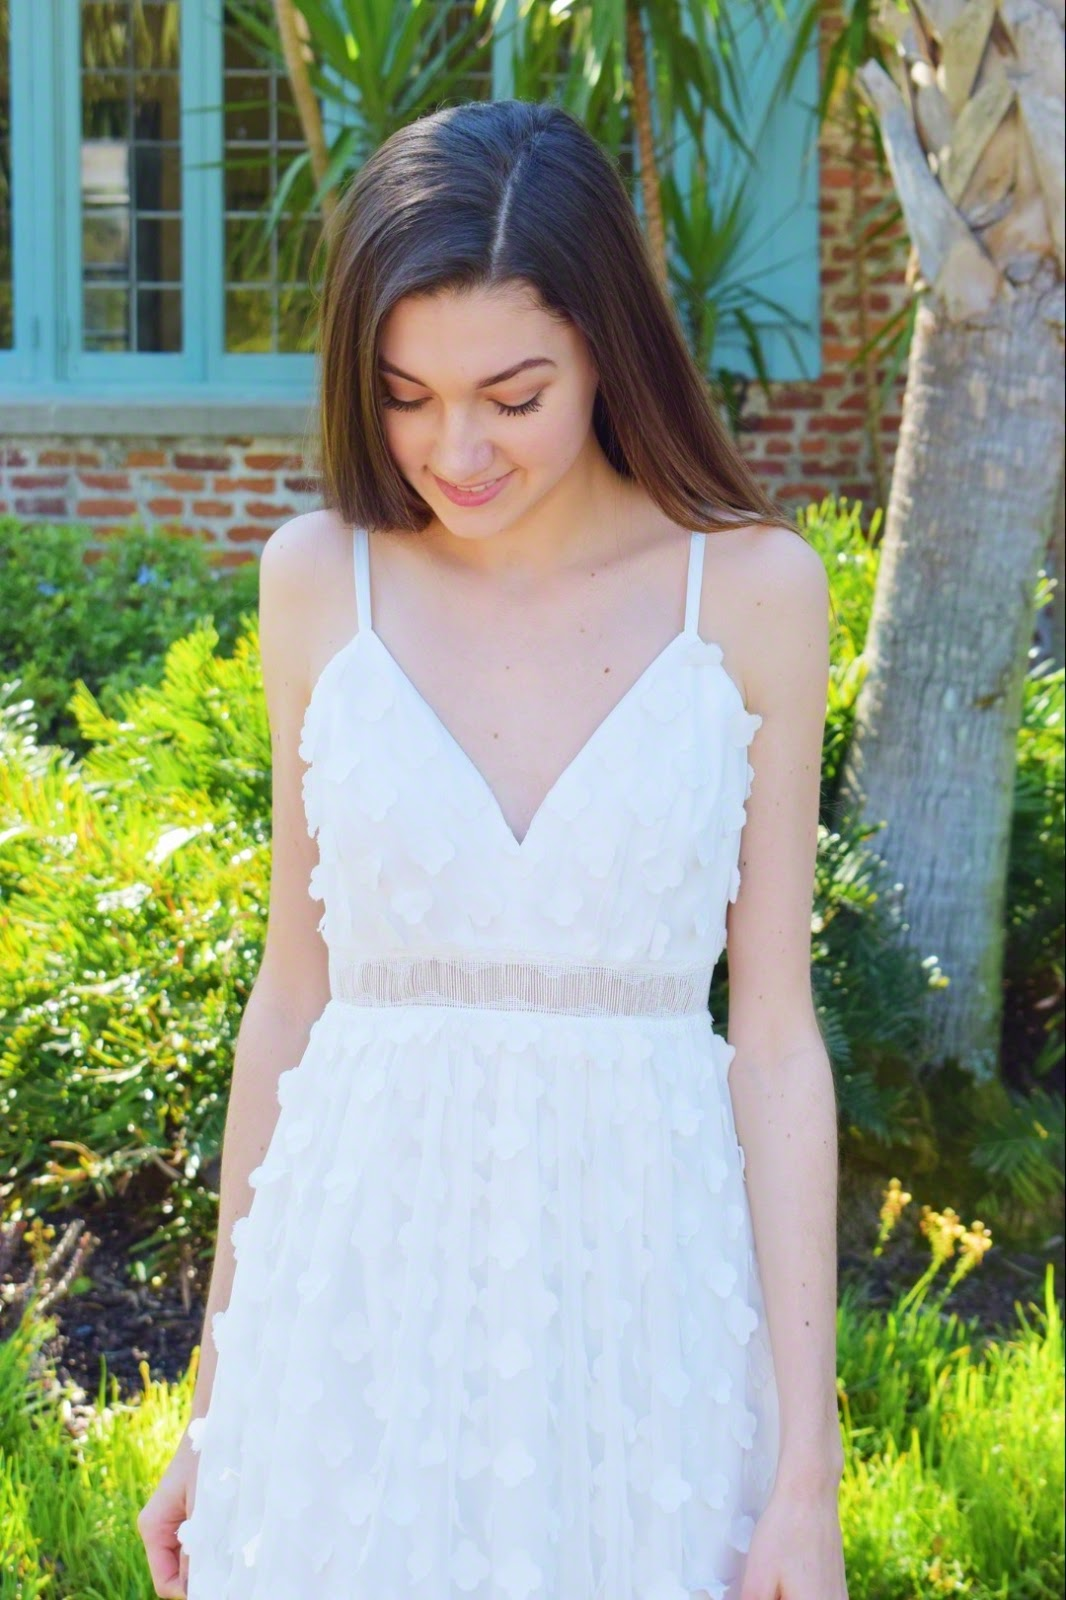 Where to find the perfect prom dress | Kate Bartlett